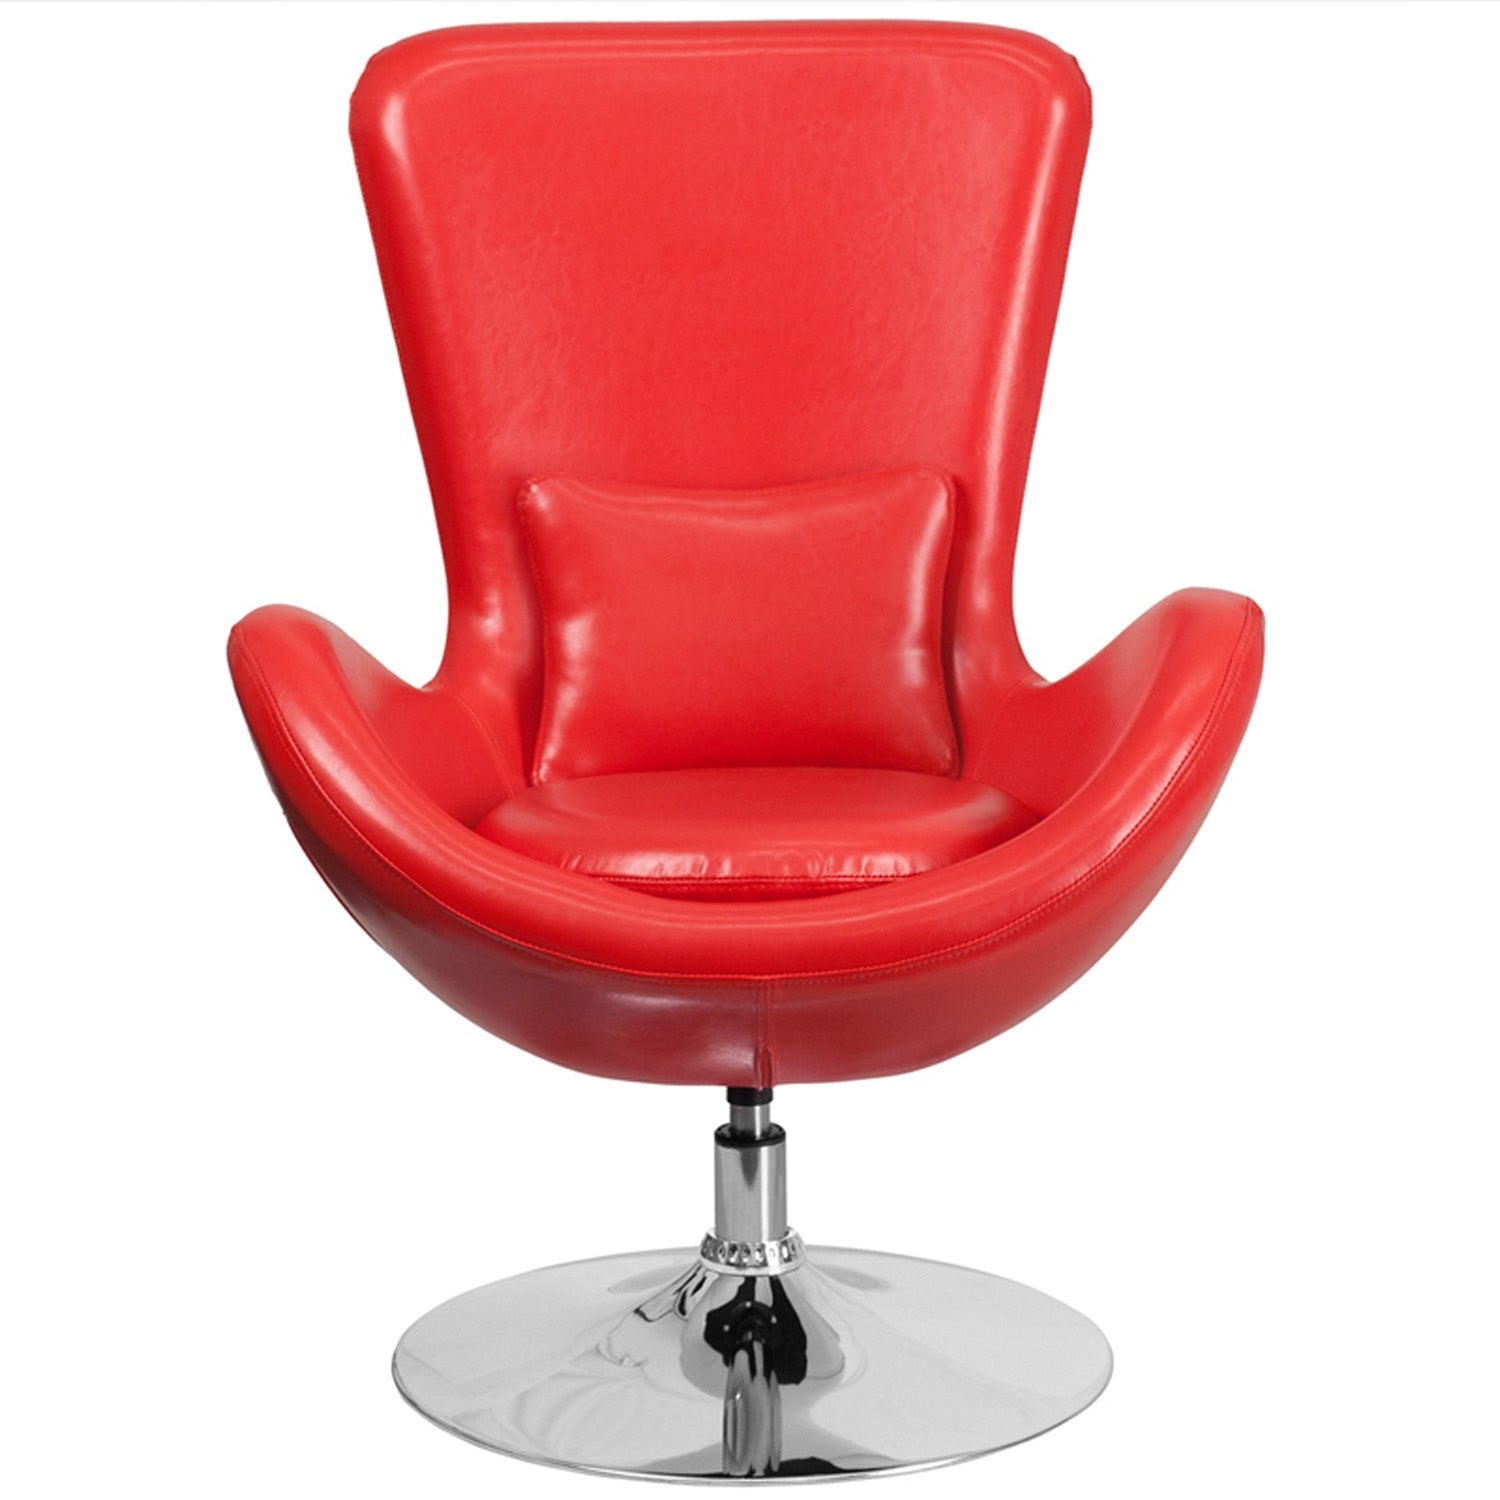 Captain/'s Guest Arm Chair Reception Chairs Black Red Cushion Office Furniture